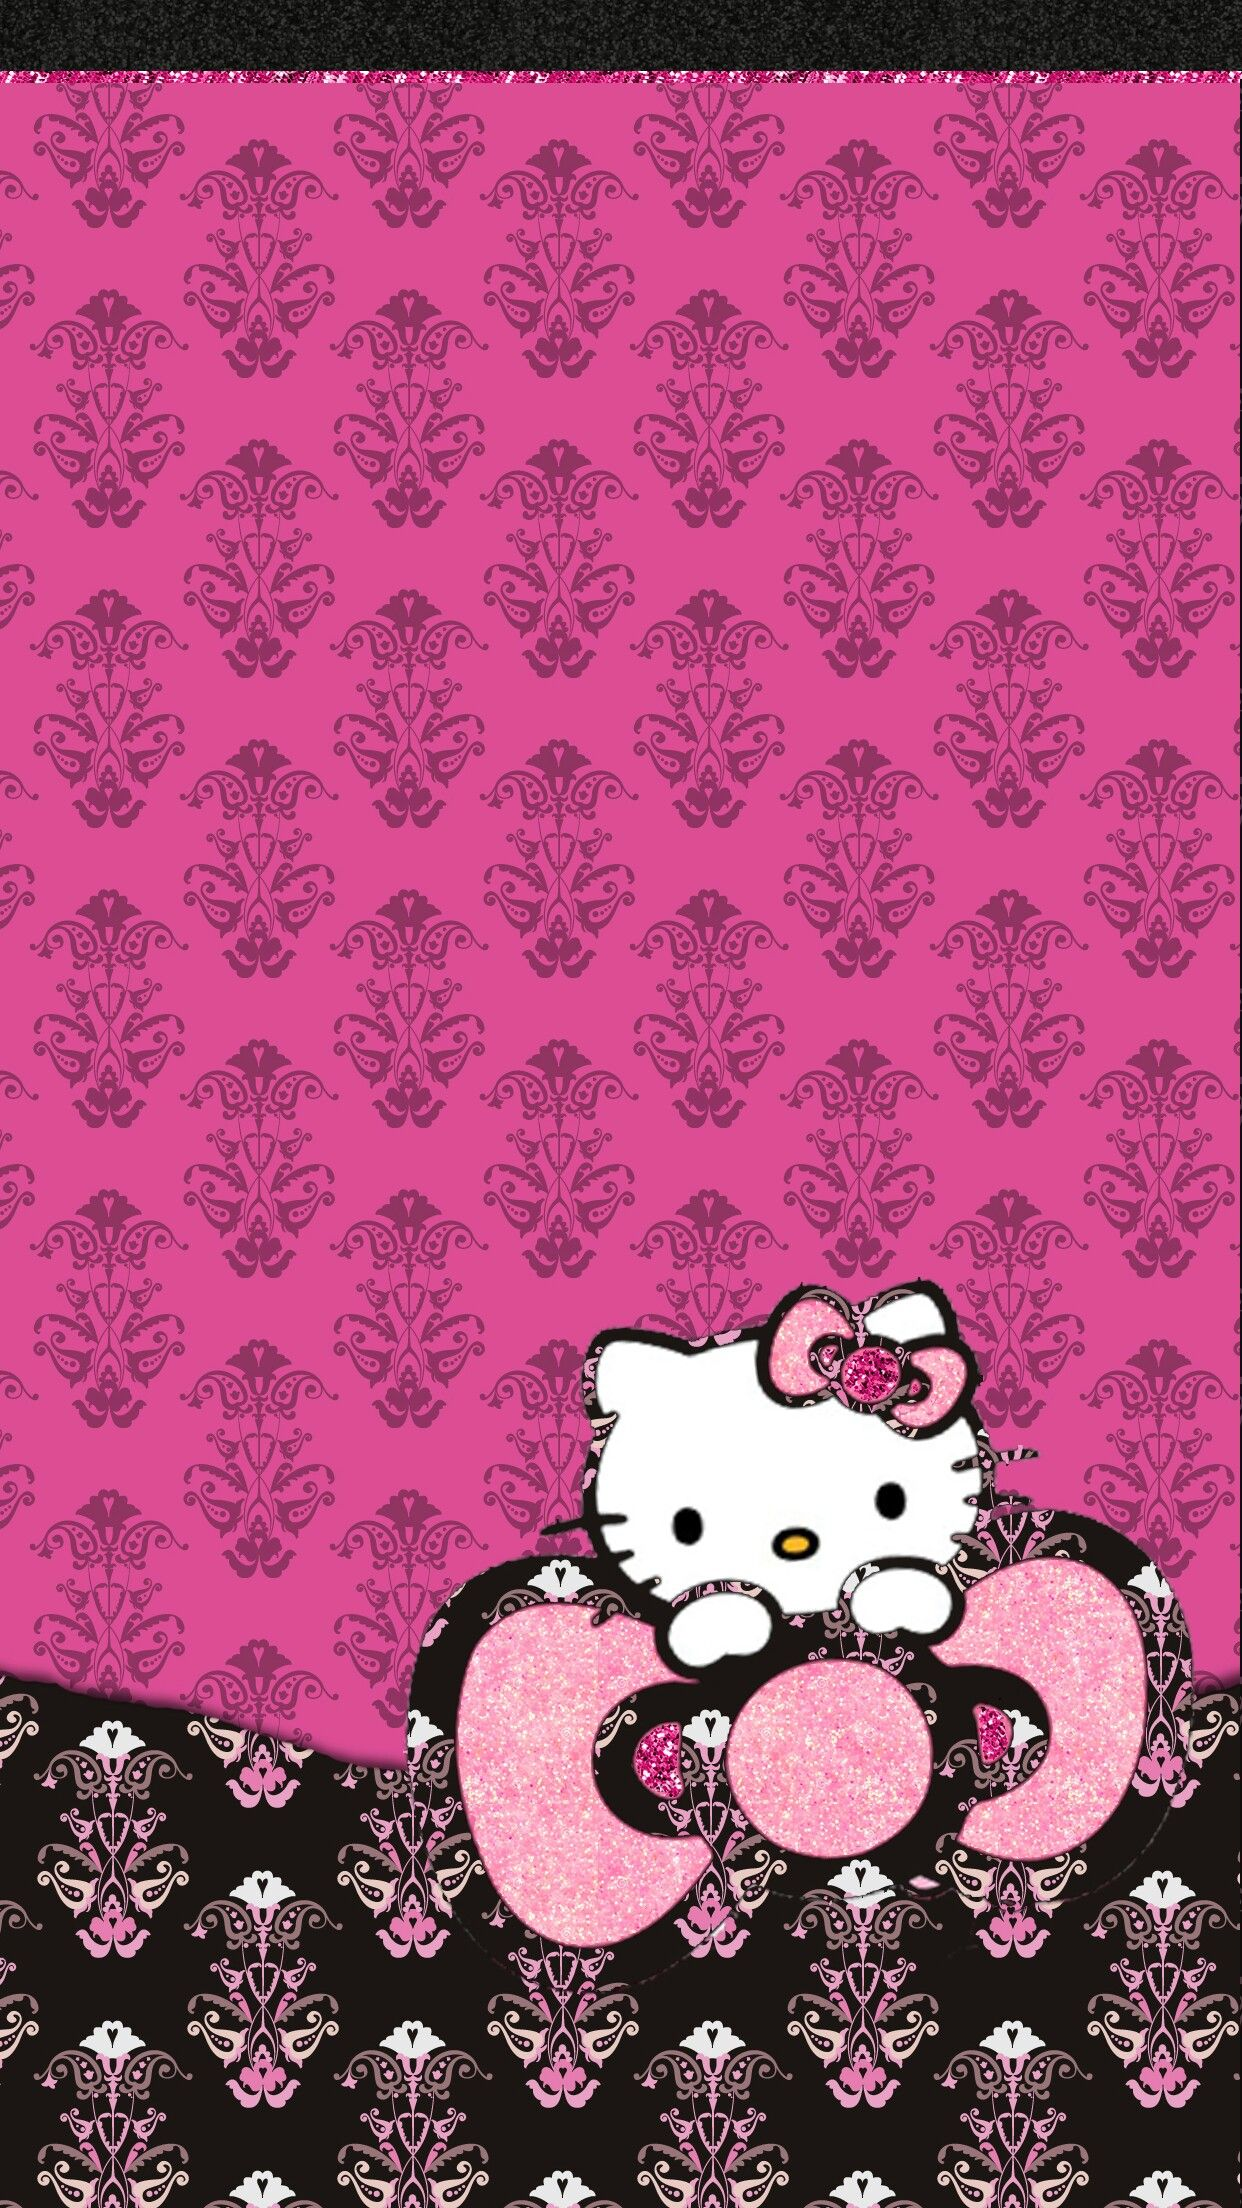 Kawaii Wallpaper Hello Kitty Mobile Stuff Sanrio Jade Skull Backgrounds Walpaper